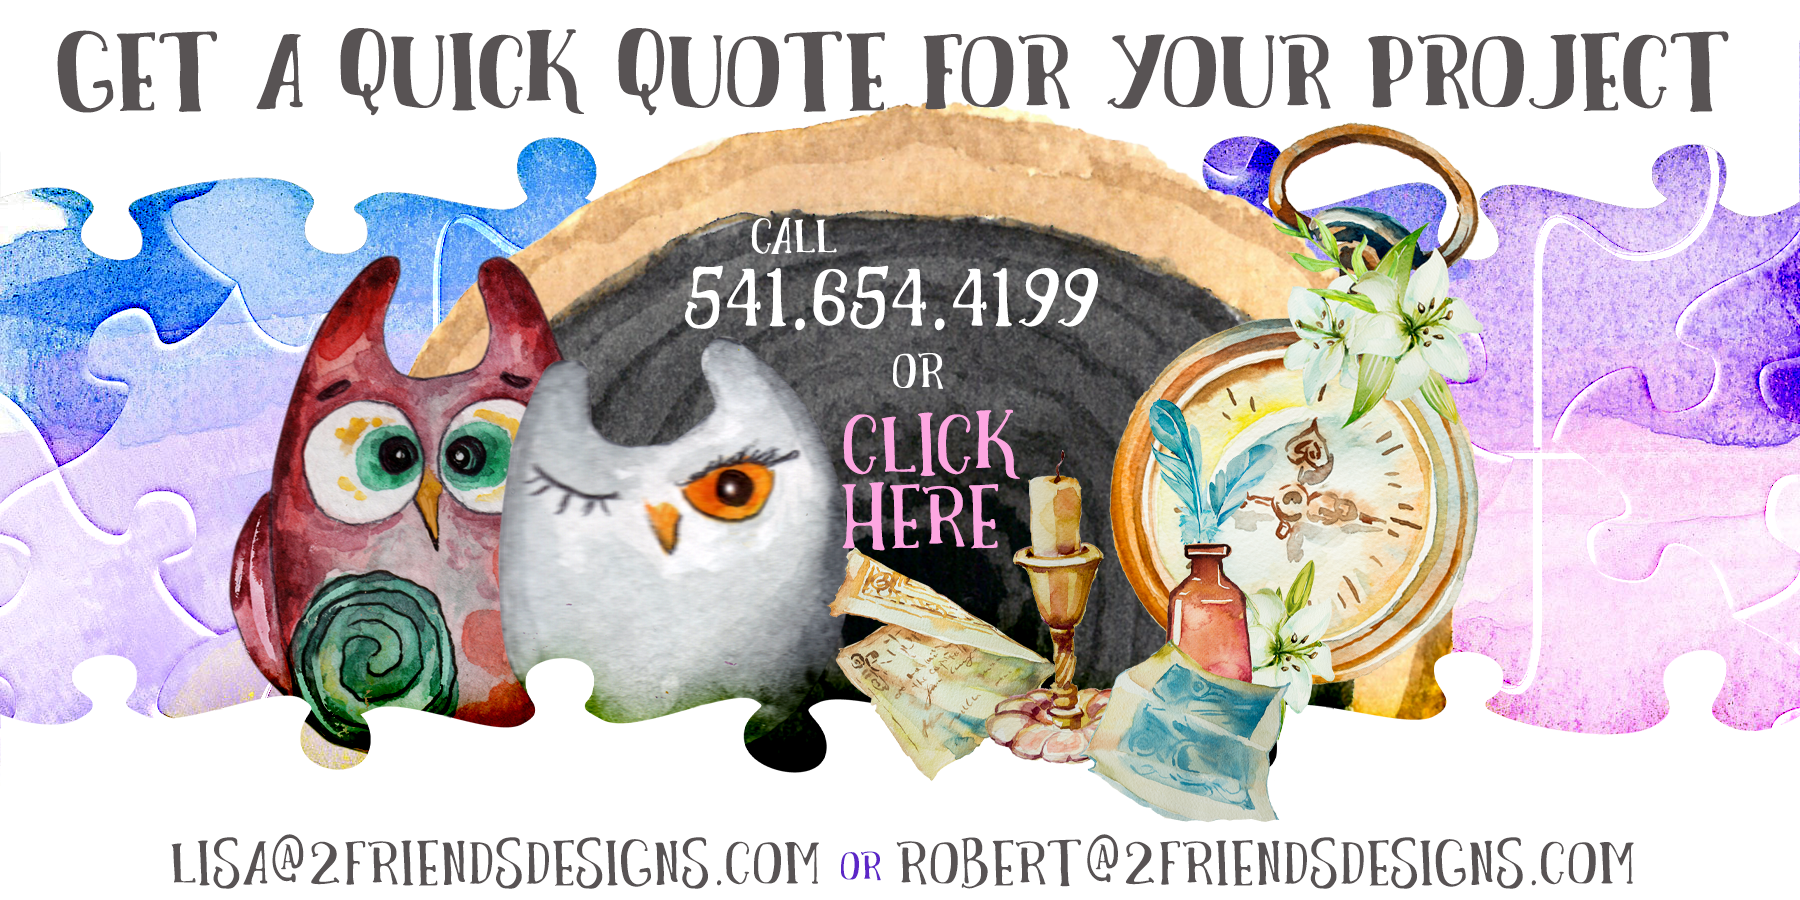 2 Friends Designs offers Quick Project Quotes for all your website needs and puzzles